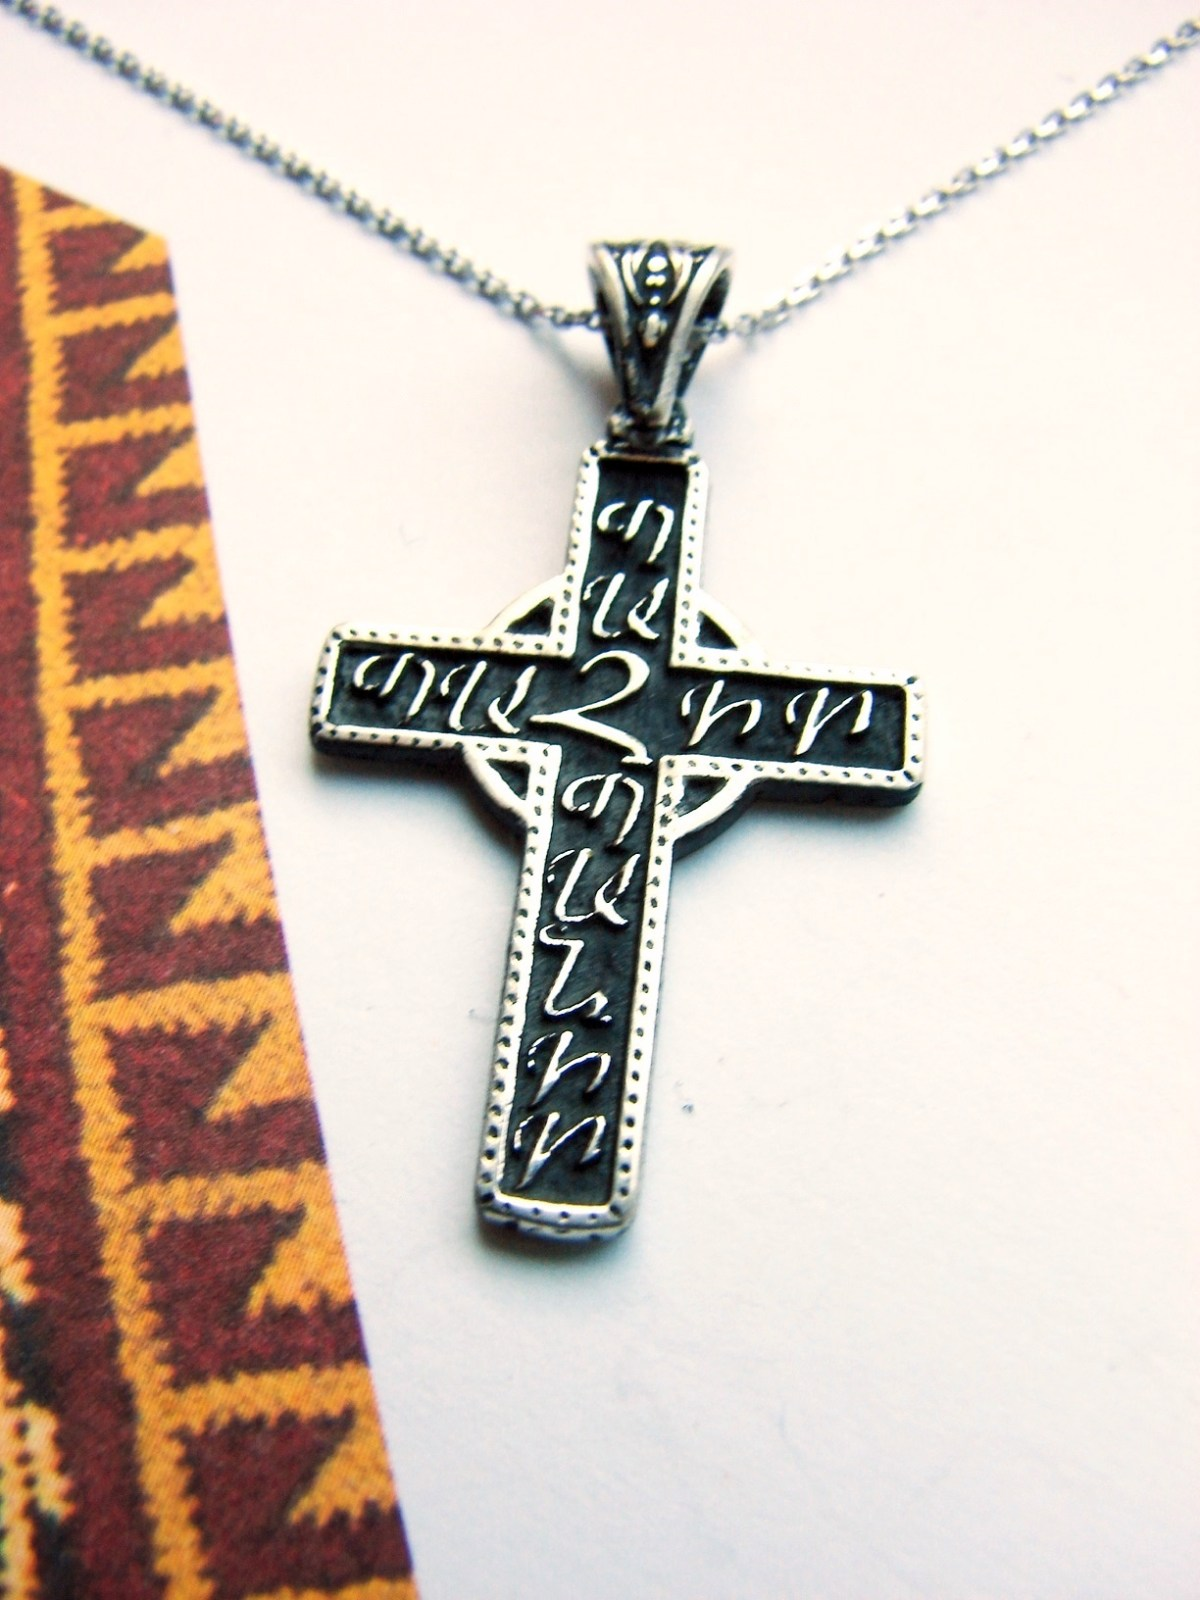 Armenian Cross Save and Protect Sterling Silver 925, Silver chain as a gift